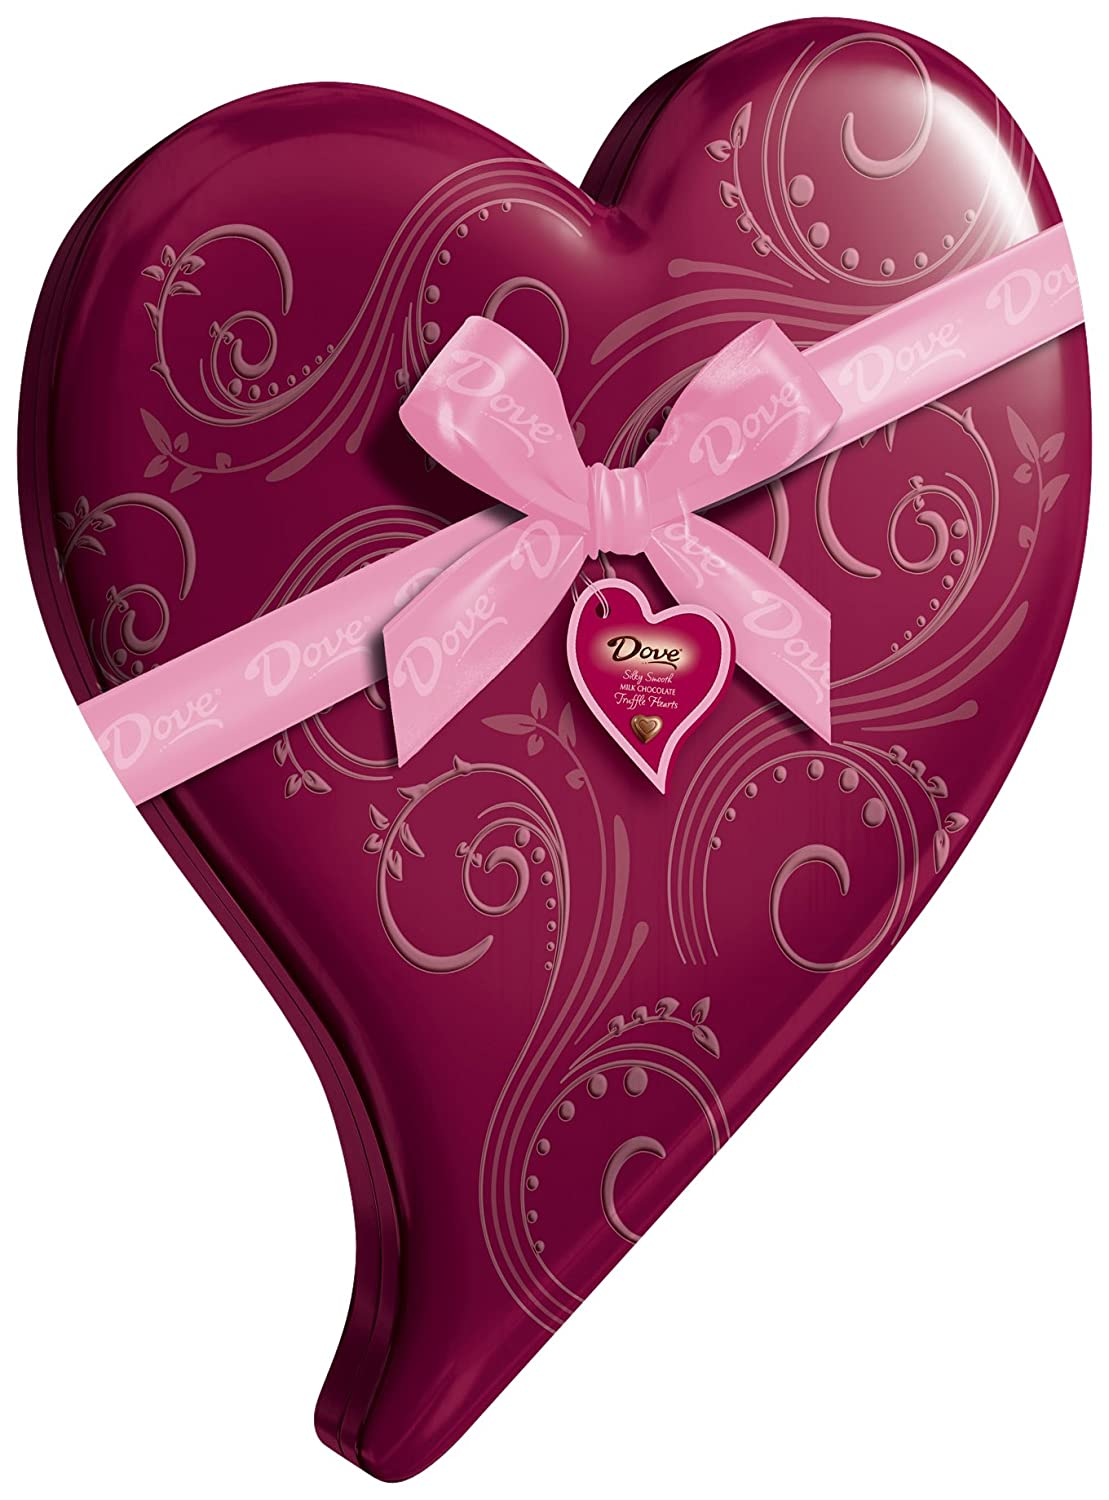 Dove Valentine's Truffle Hearts, Milk Chocolate, 6.5-Ounce Heart Tin